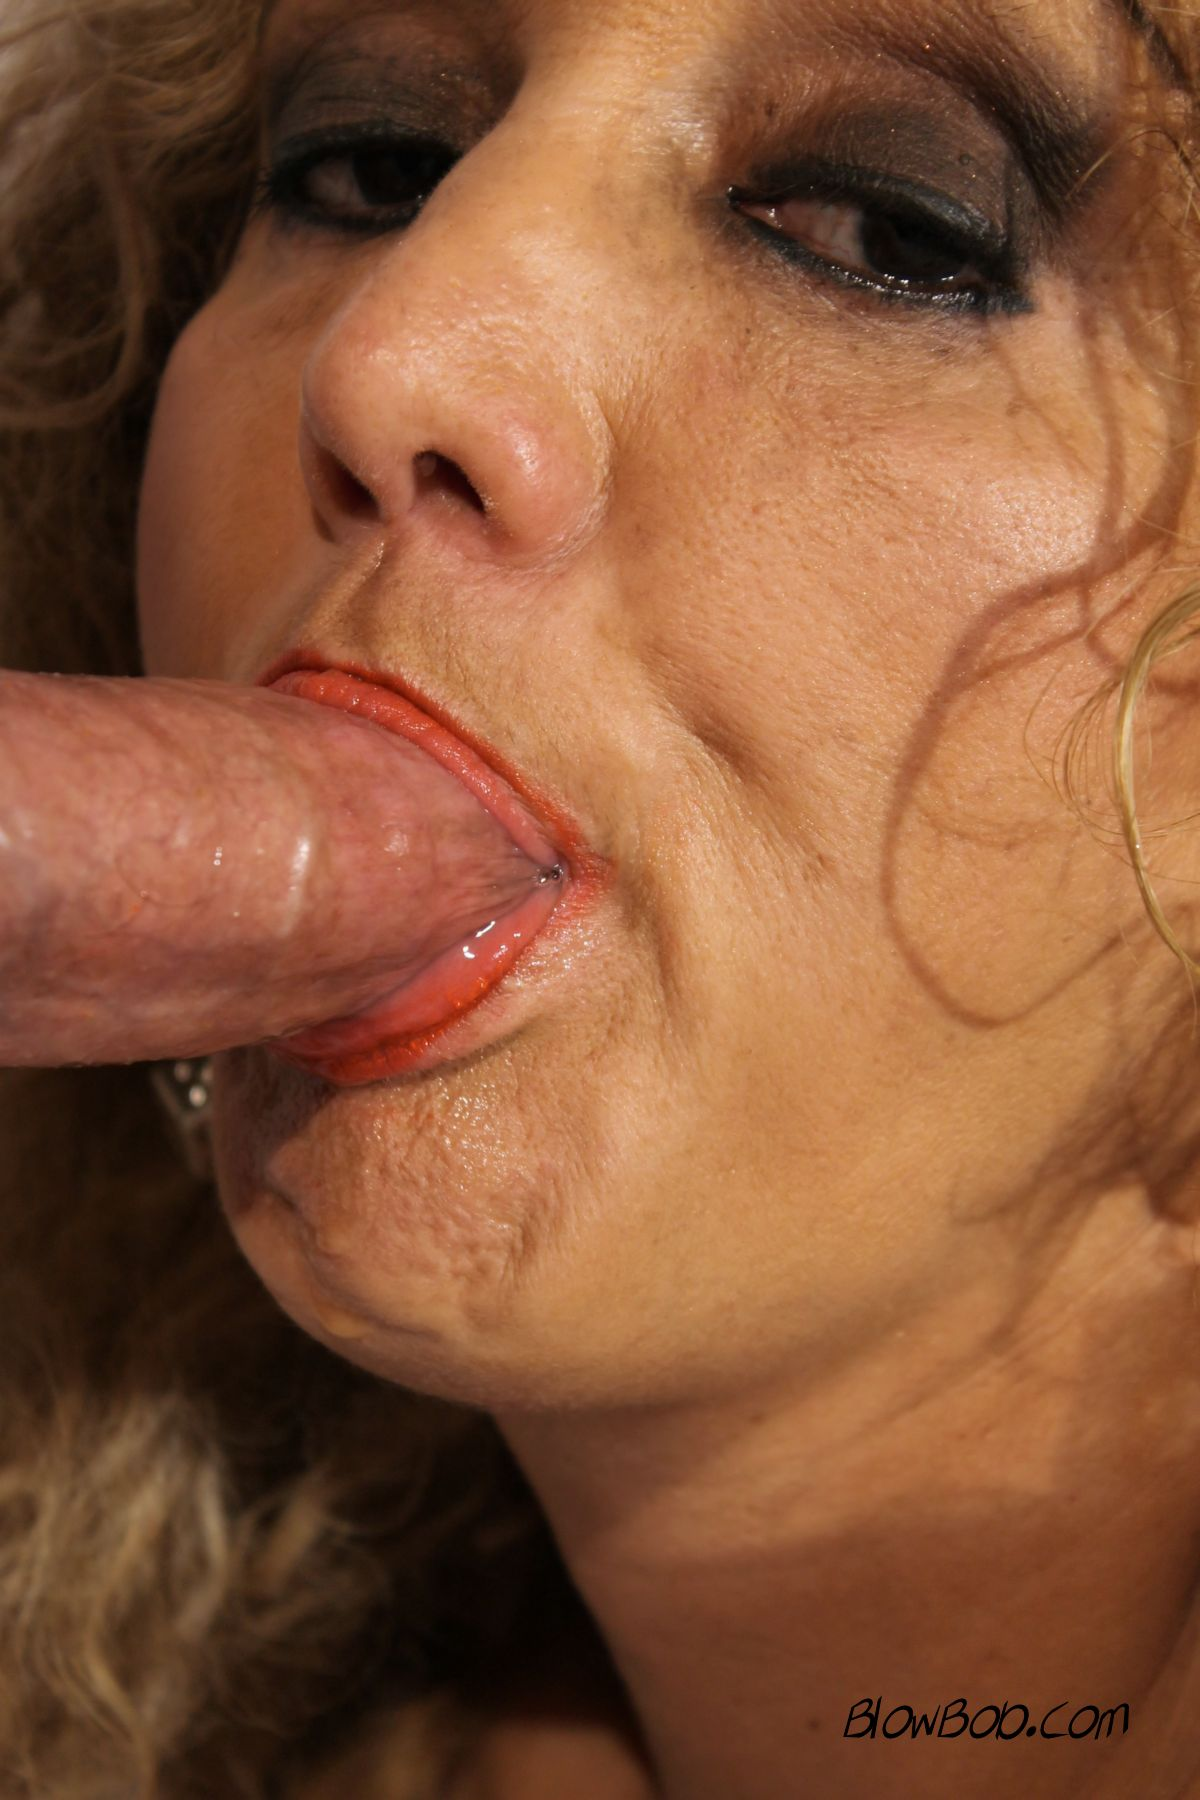 More Lips hot cum can suggest